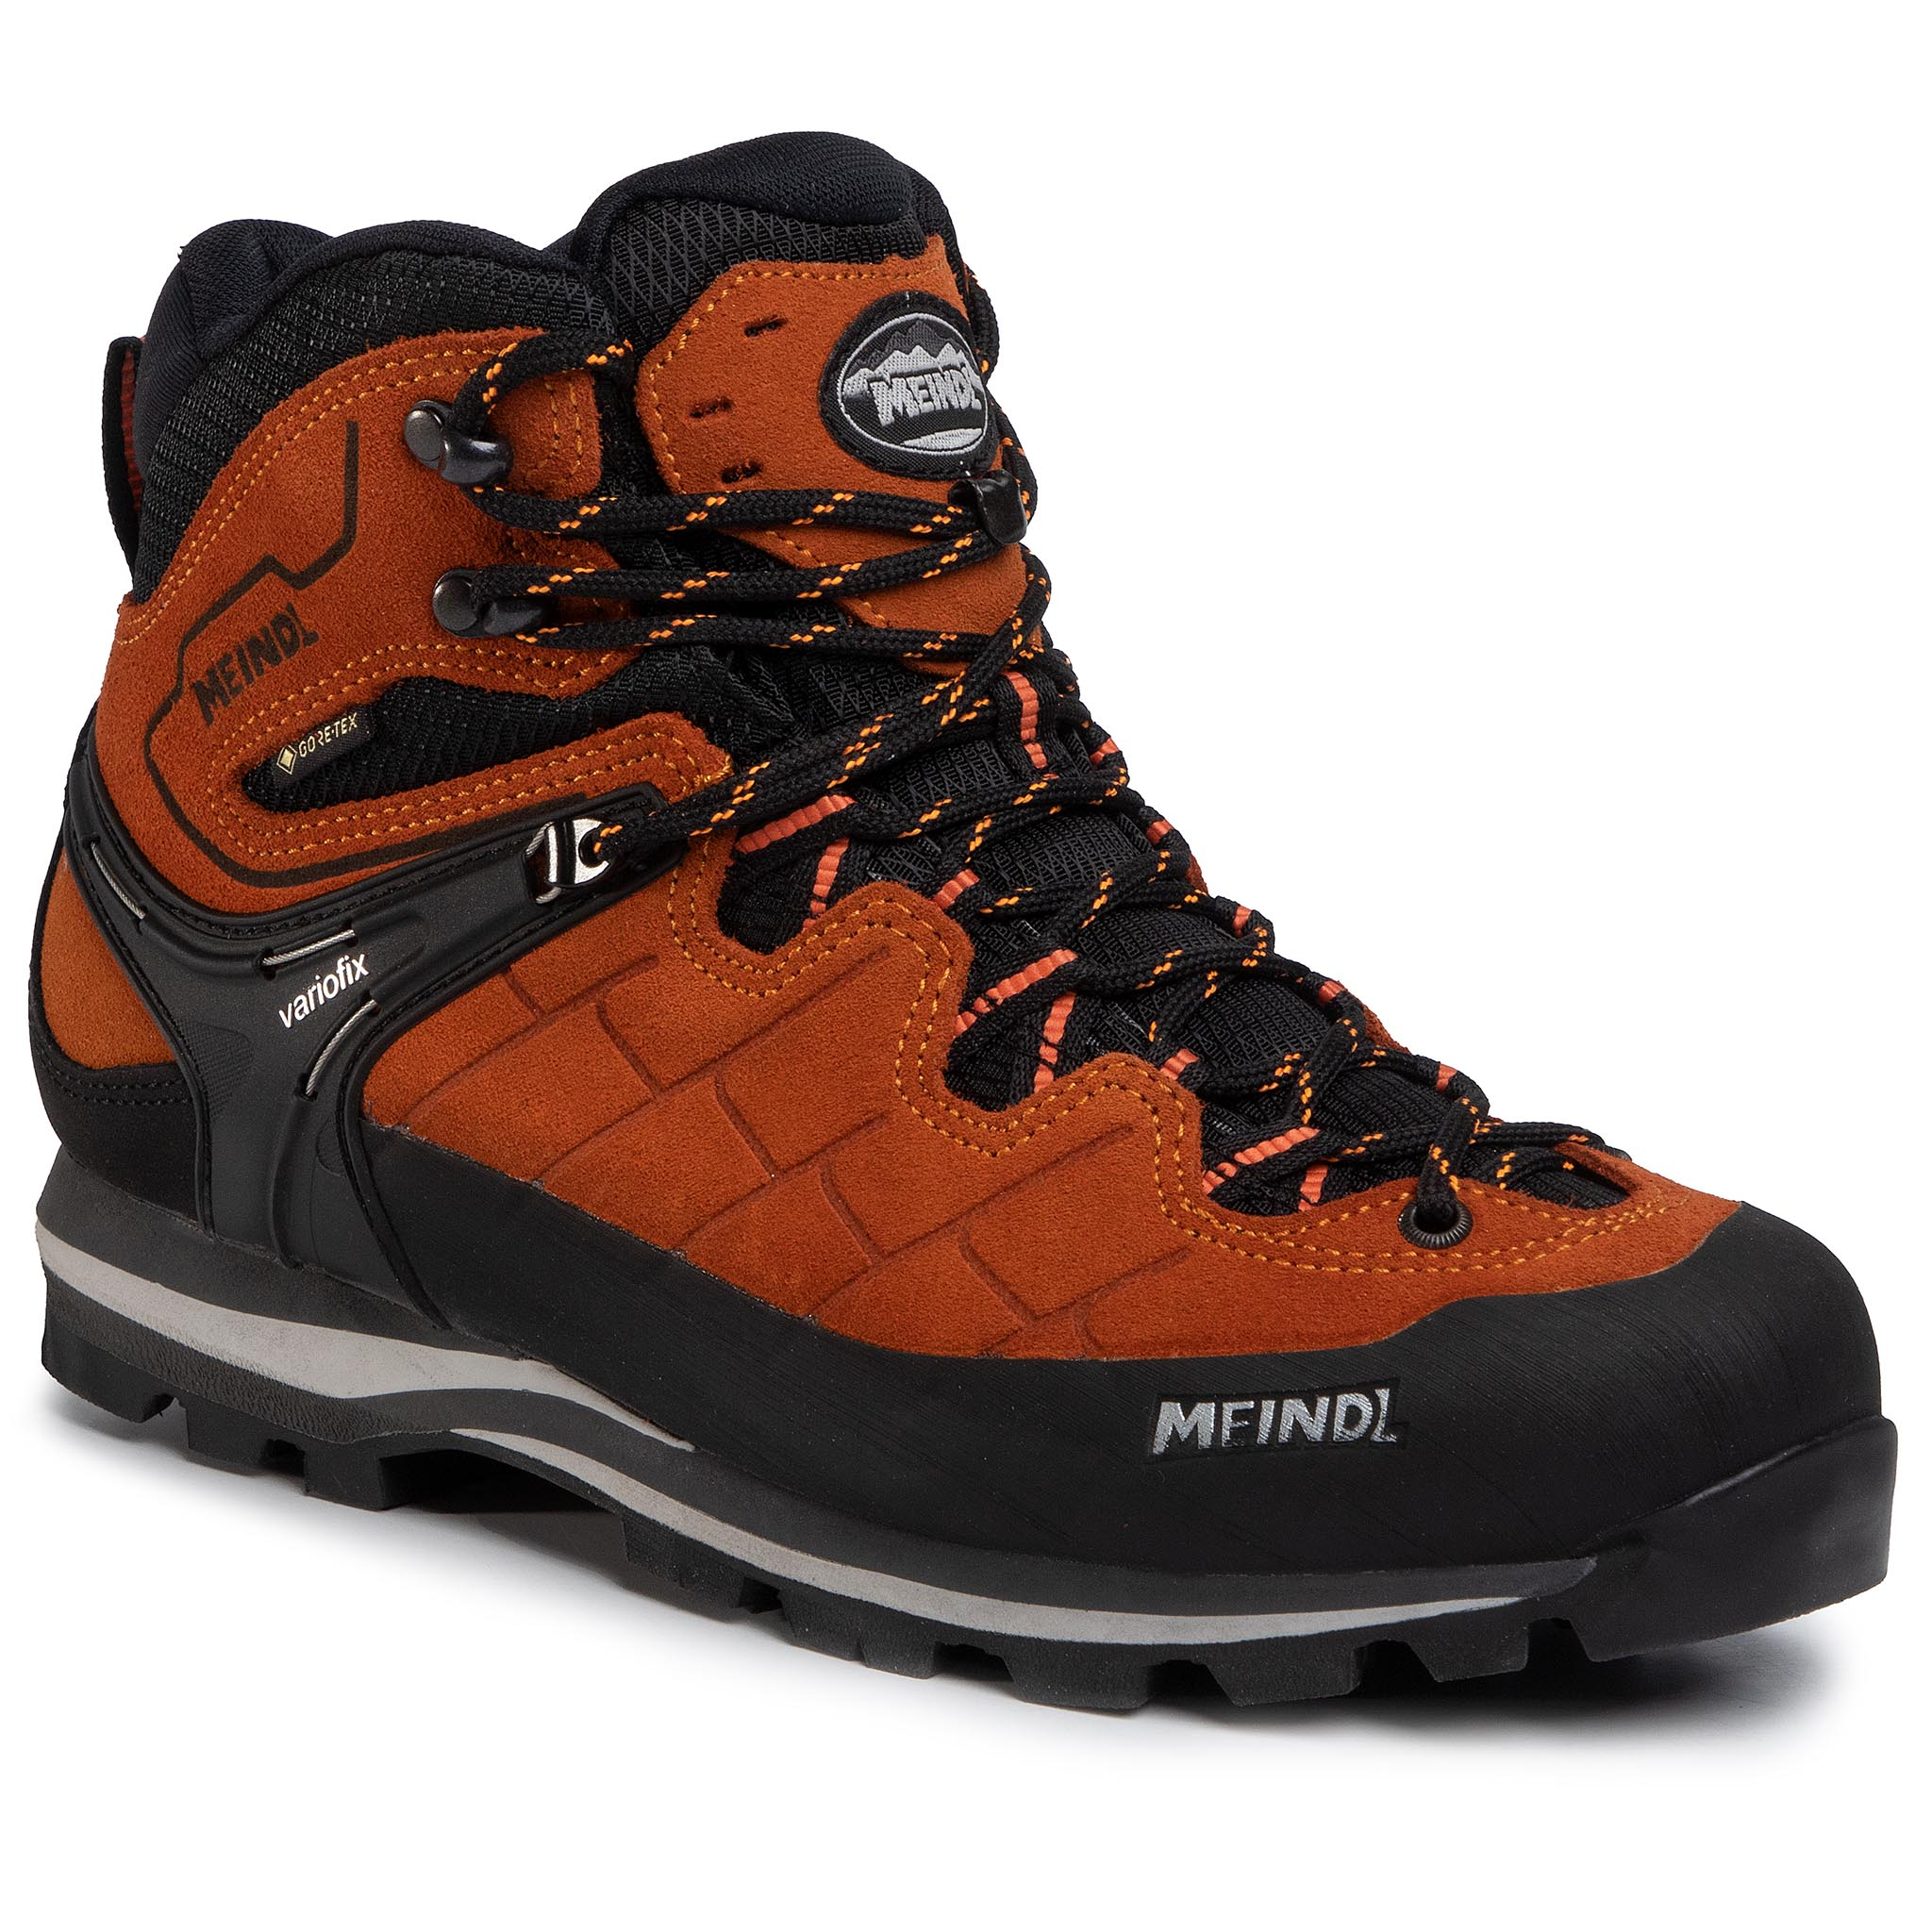 Trekkings Meindl - Litepeak Gtx Gore-Tex 3928 Orange/Schwarz 76 imagine epantofi.ro 2021